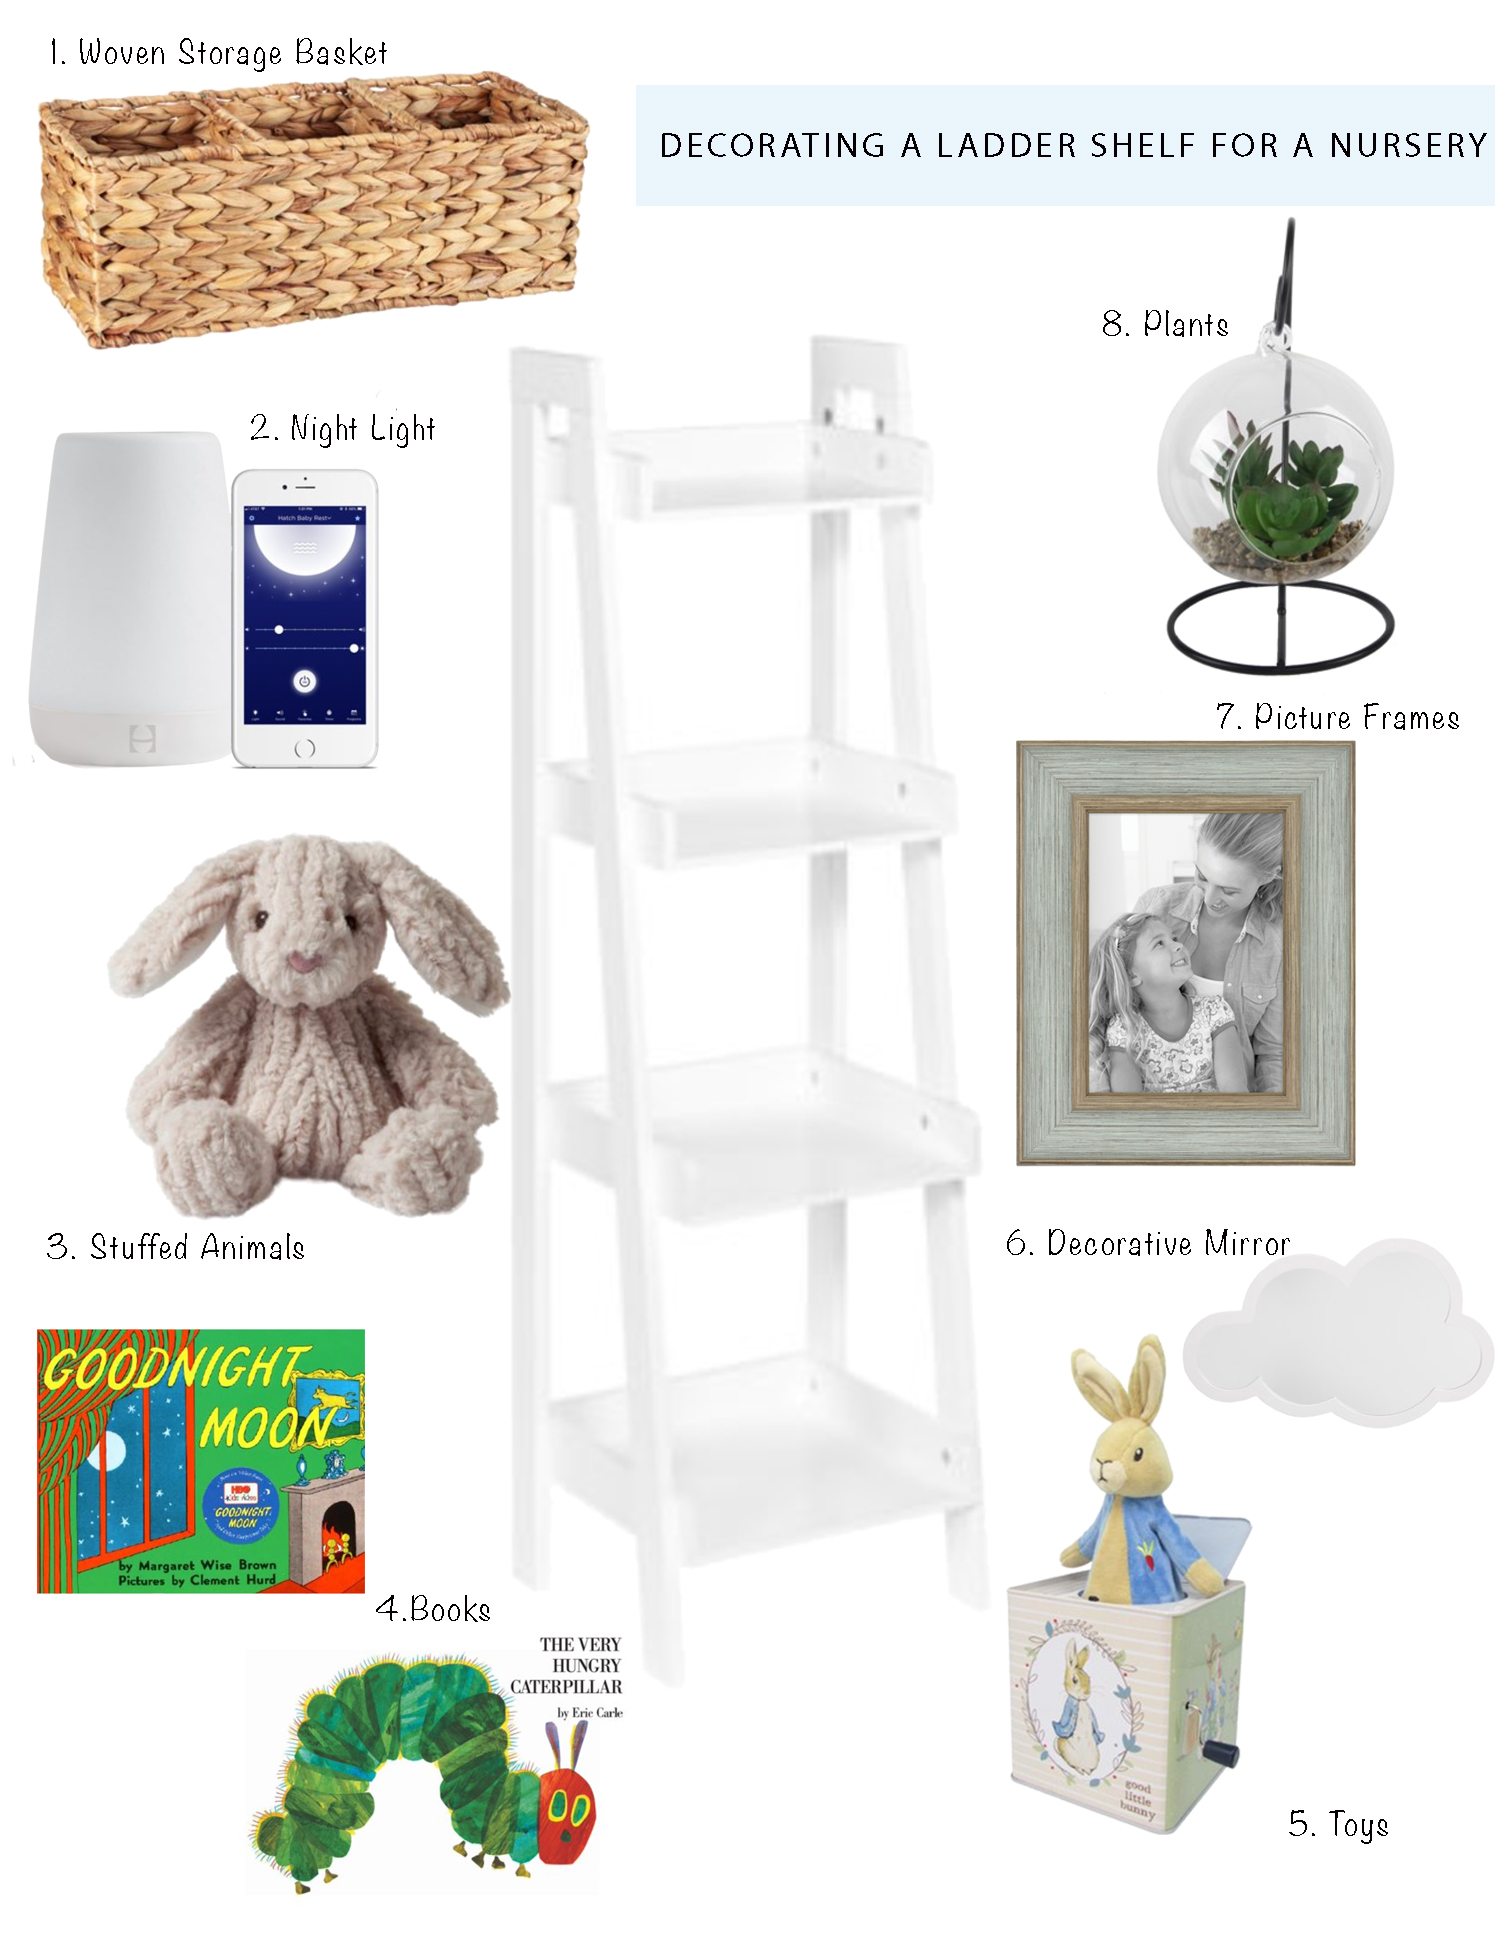 Decorating A Ladder Shelf For A Nursery